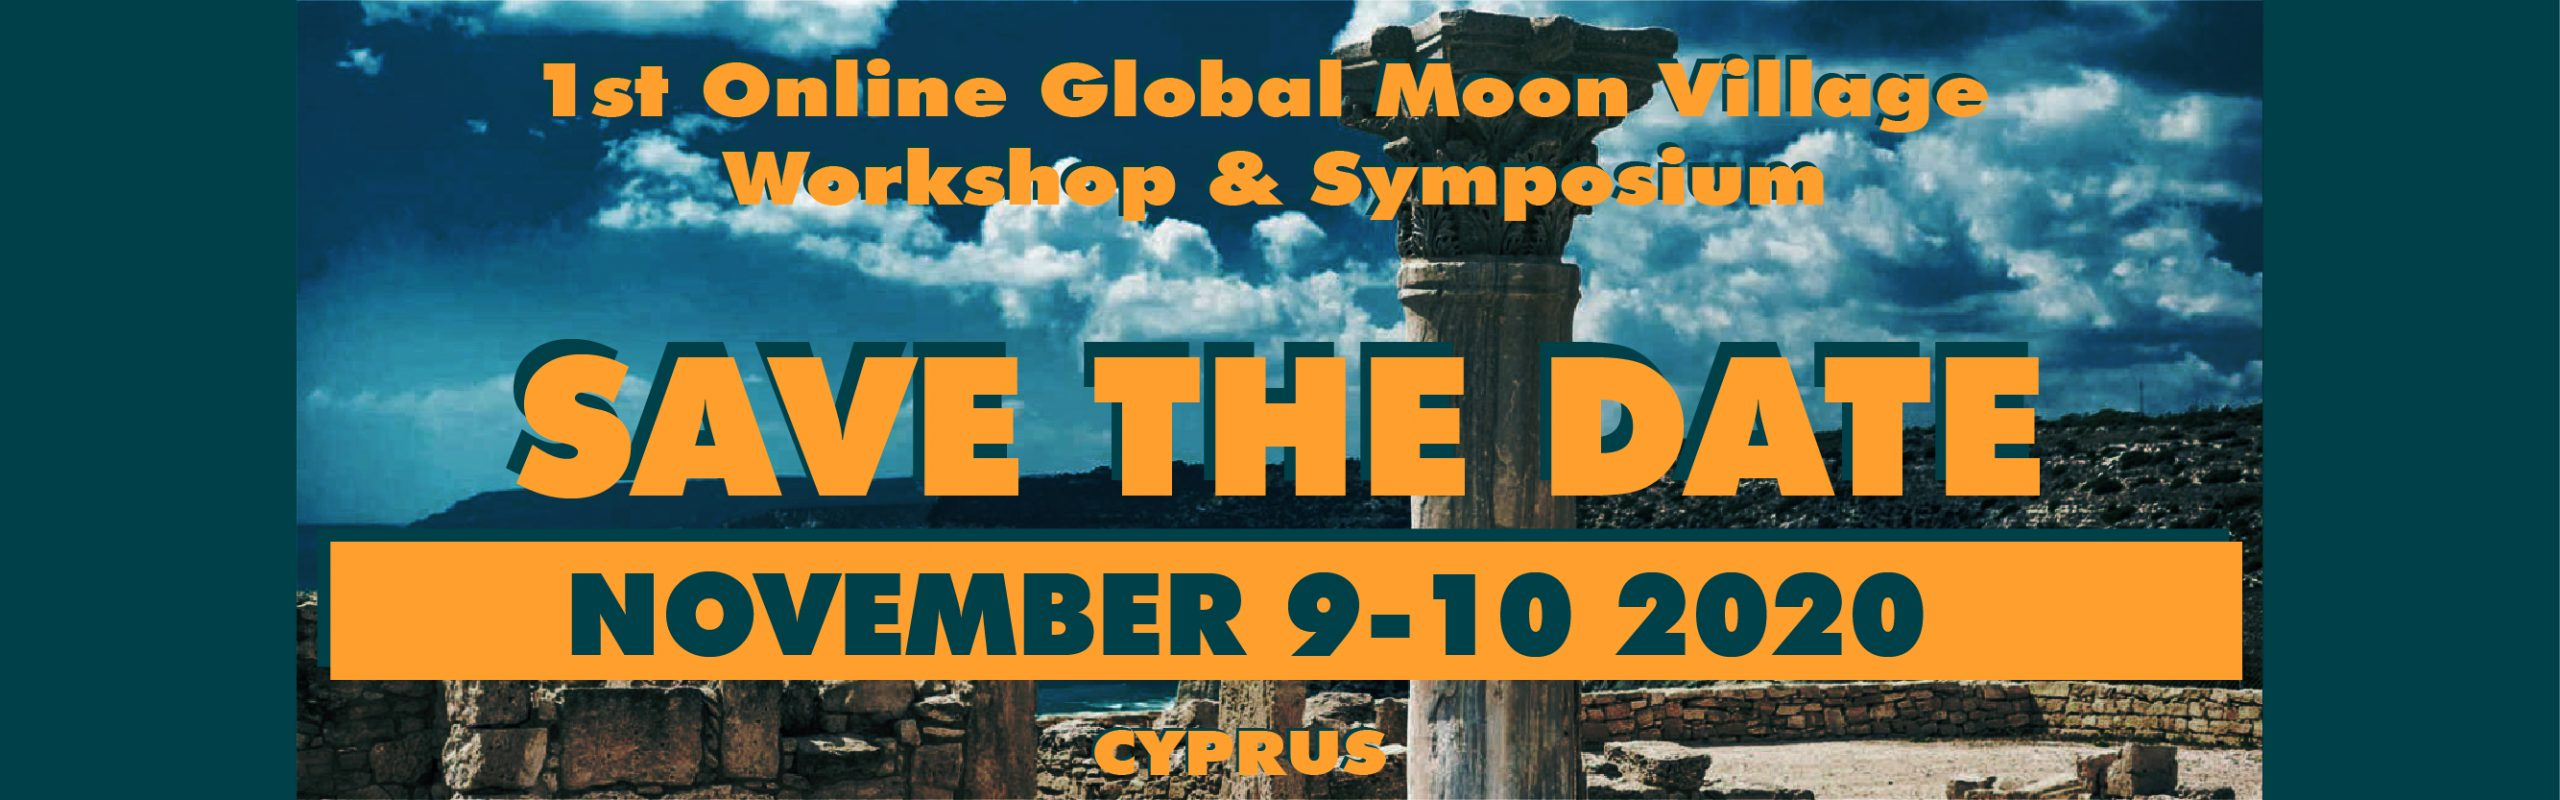 Save the date – 1st Online Global Moon Village Workshop & Symposium